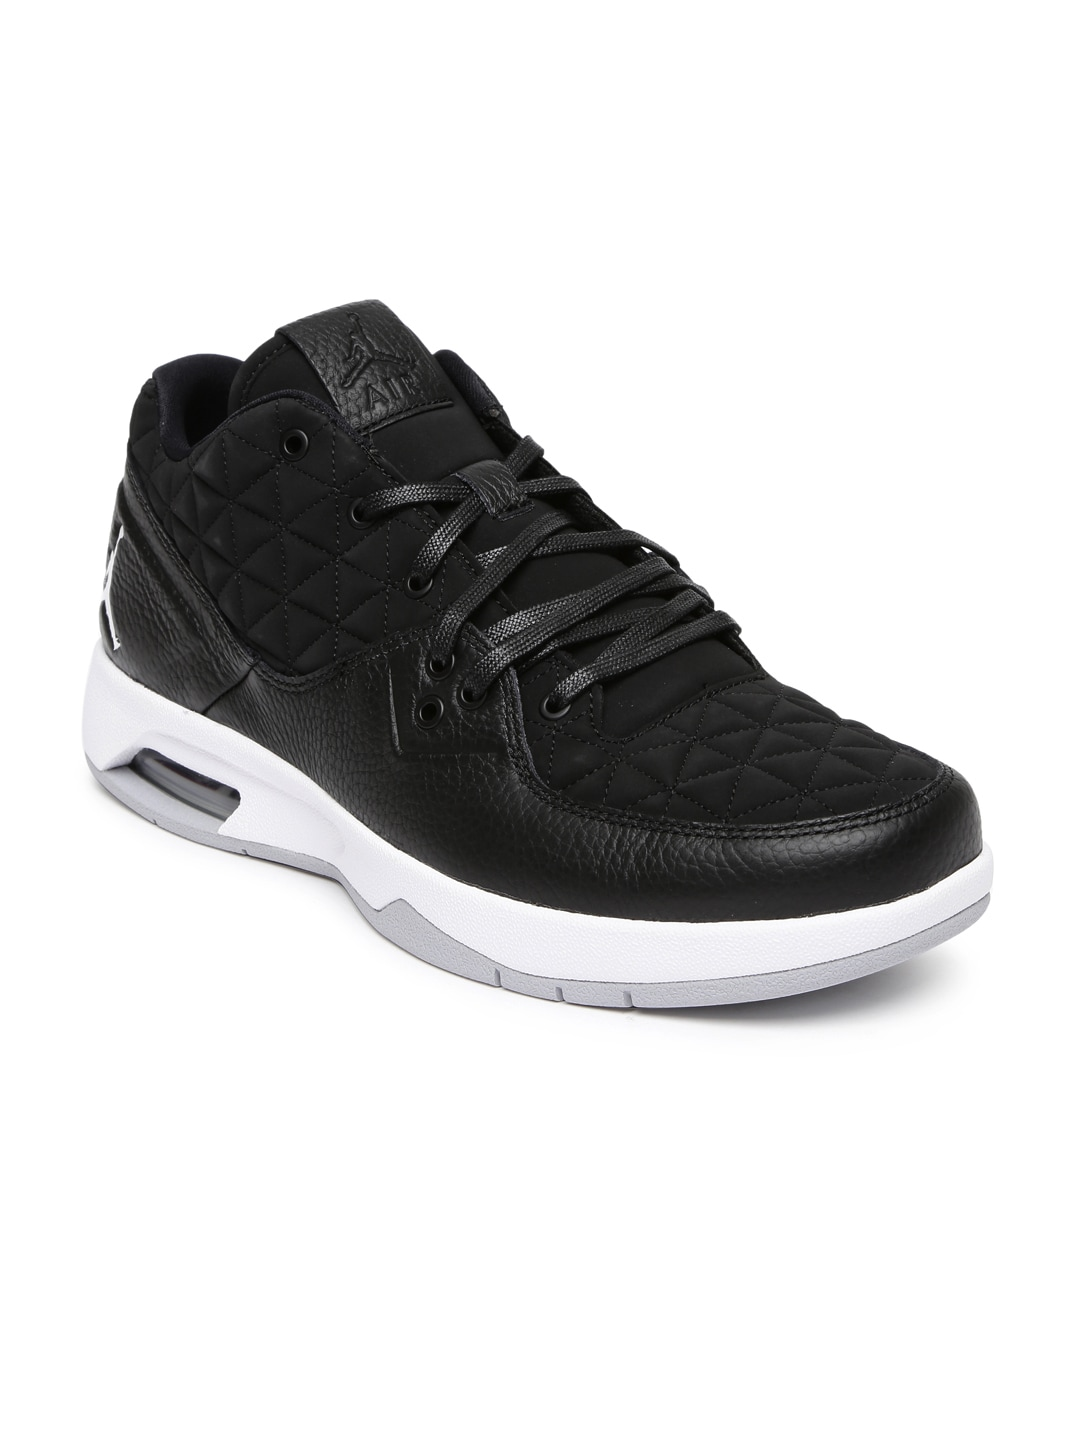 820ac796160229 Nike 845043-010 Men Black Jordan Clutch Leather Basketball Shoes- Price in  India